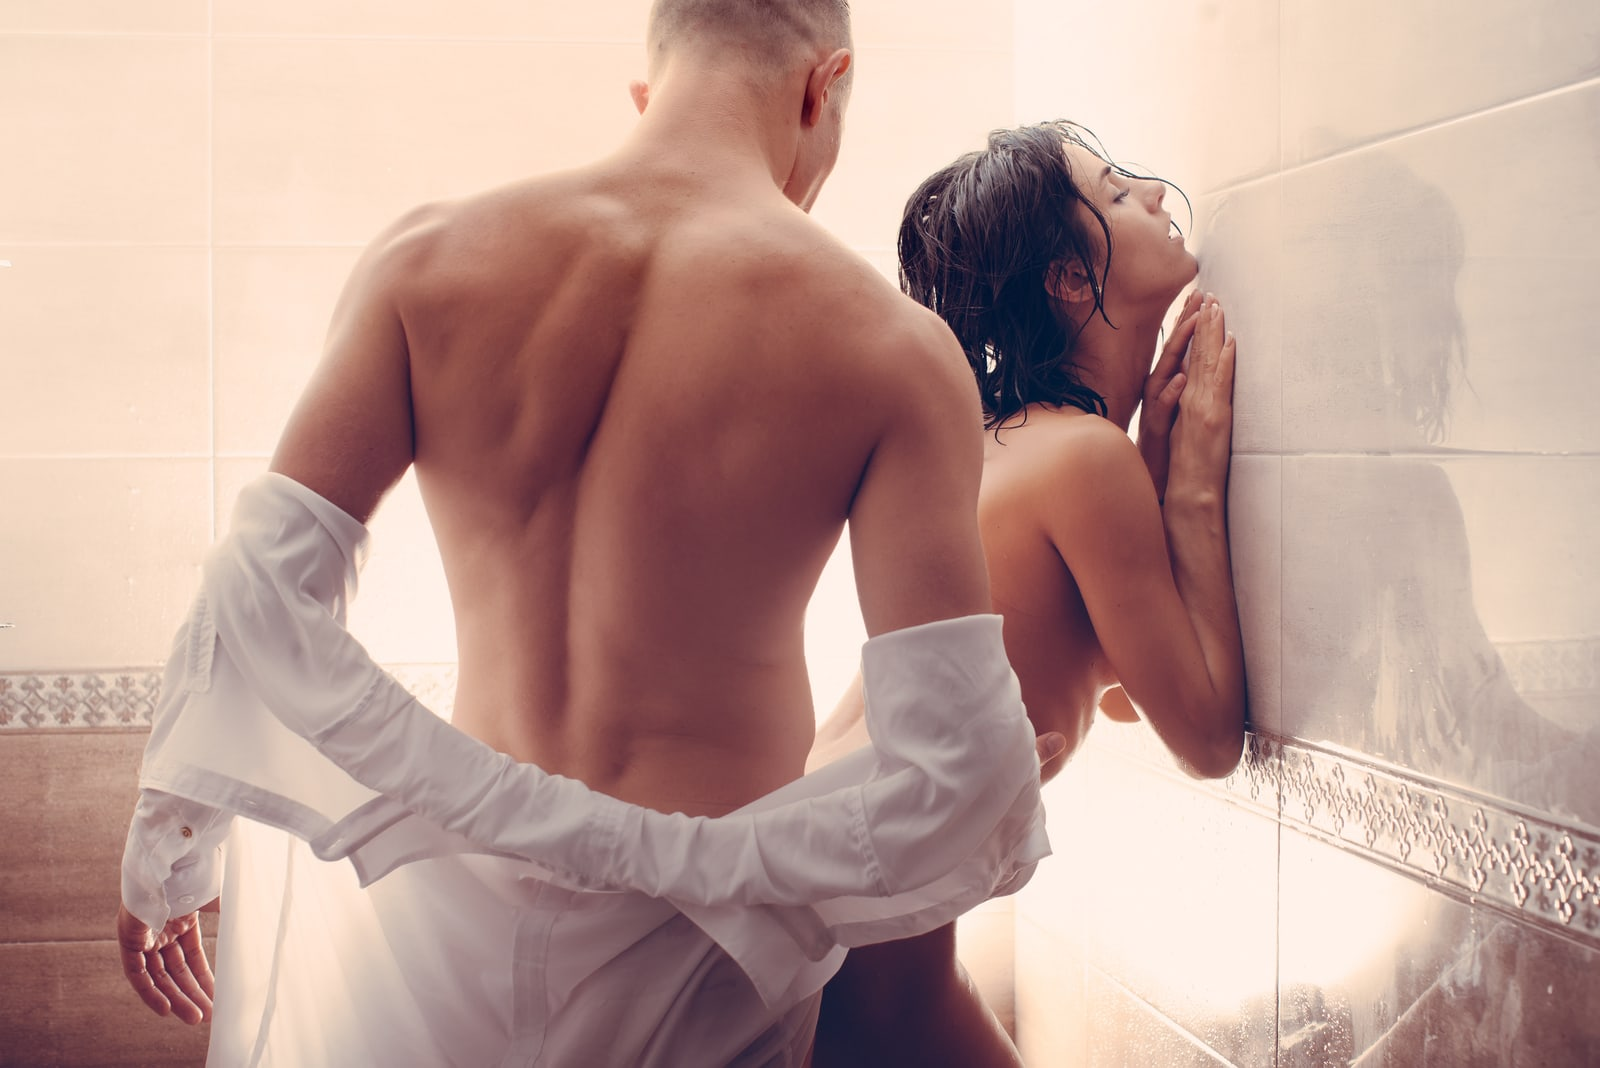 a man fucks a woman from behind